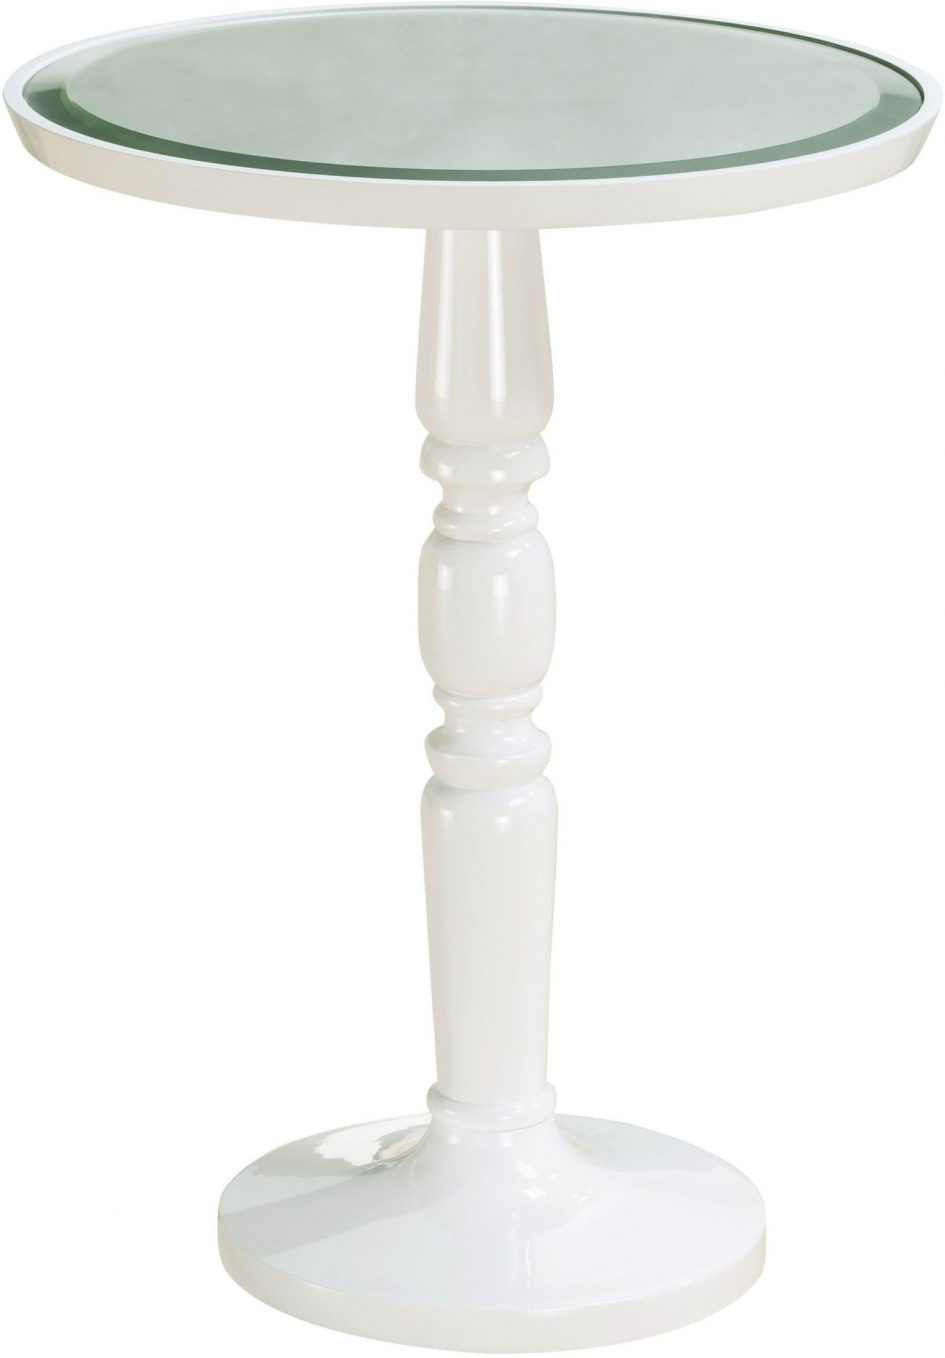 trunk end table square tall metal side accent tables white one drawer replica furniture chrome chandelier casual dining sets gray marble kids plastic nic coffee and two oval